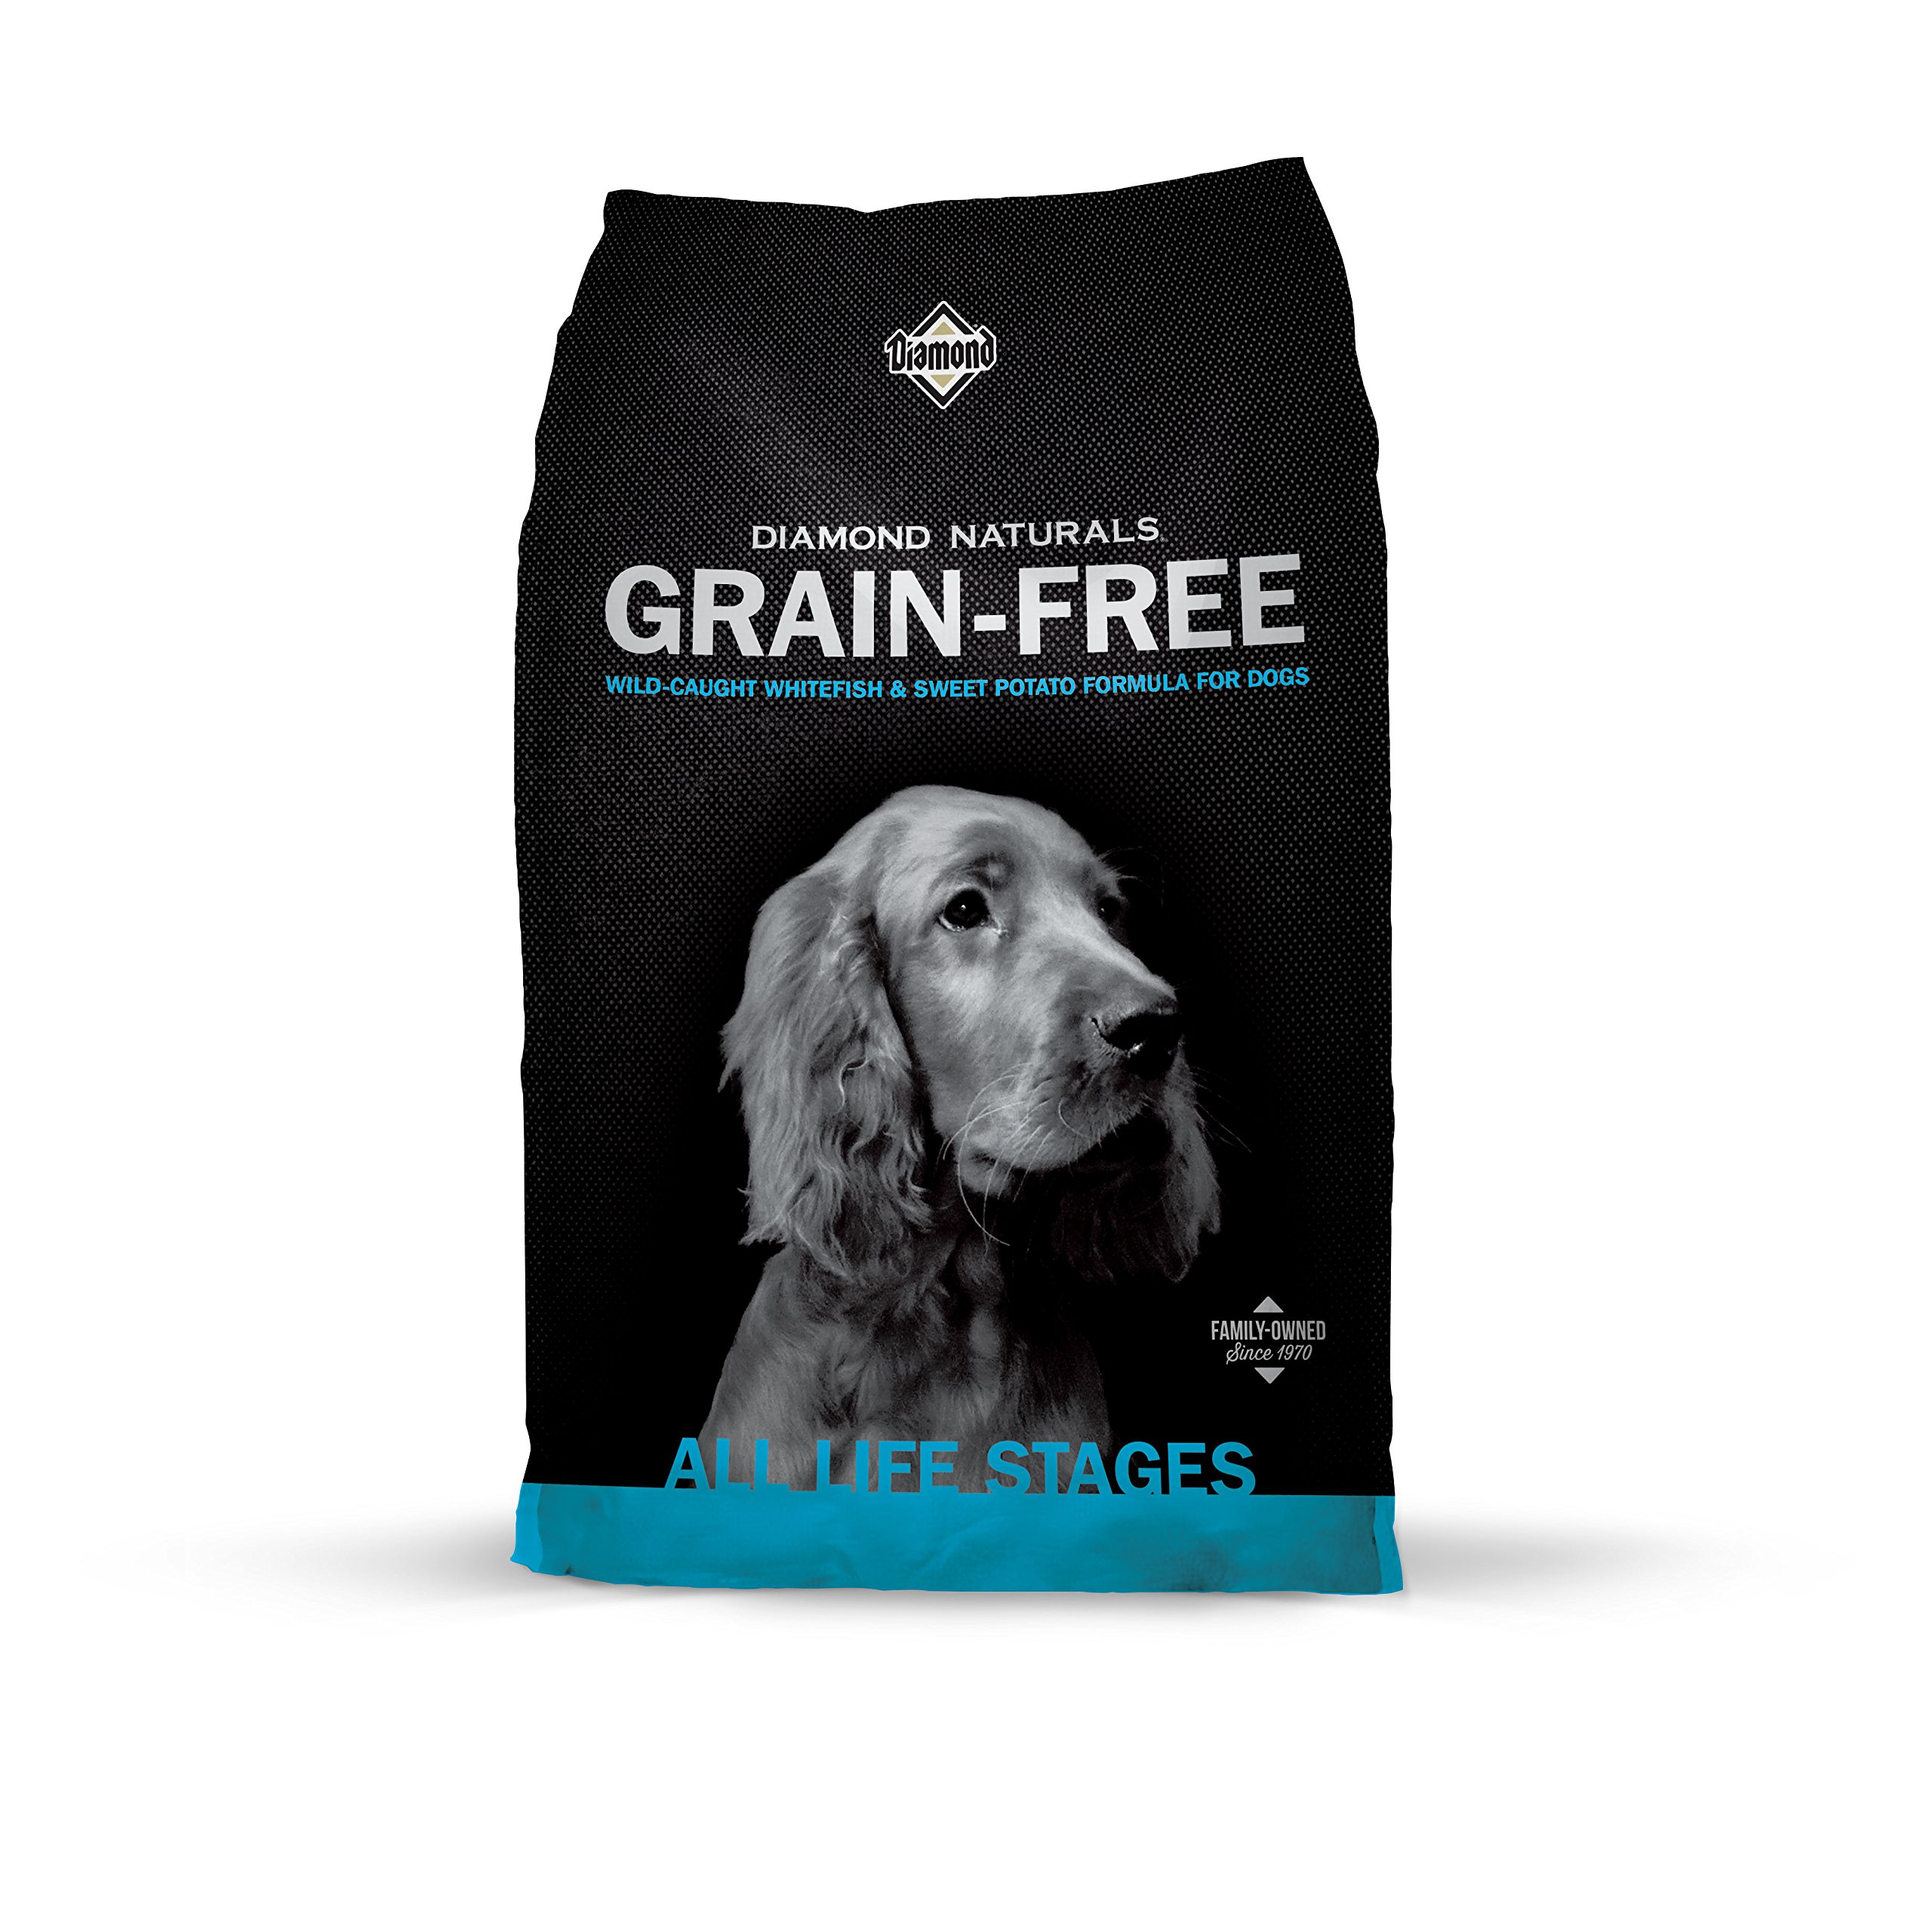 Diamond Naturals Grain Free Real Meat Recipe Dry Dog Food with Natural Ingredients by Diamond (Image #1)